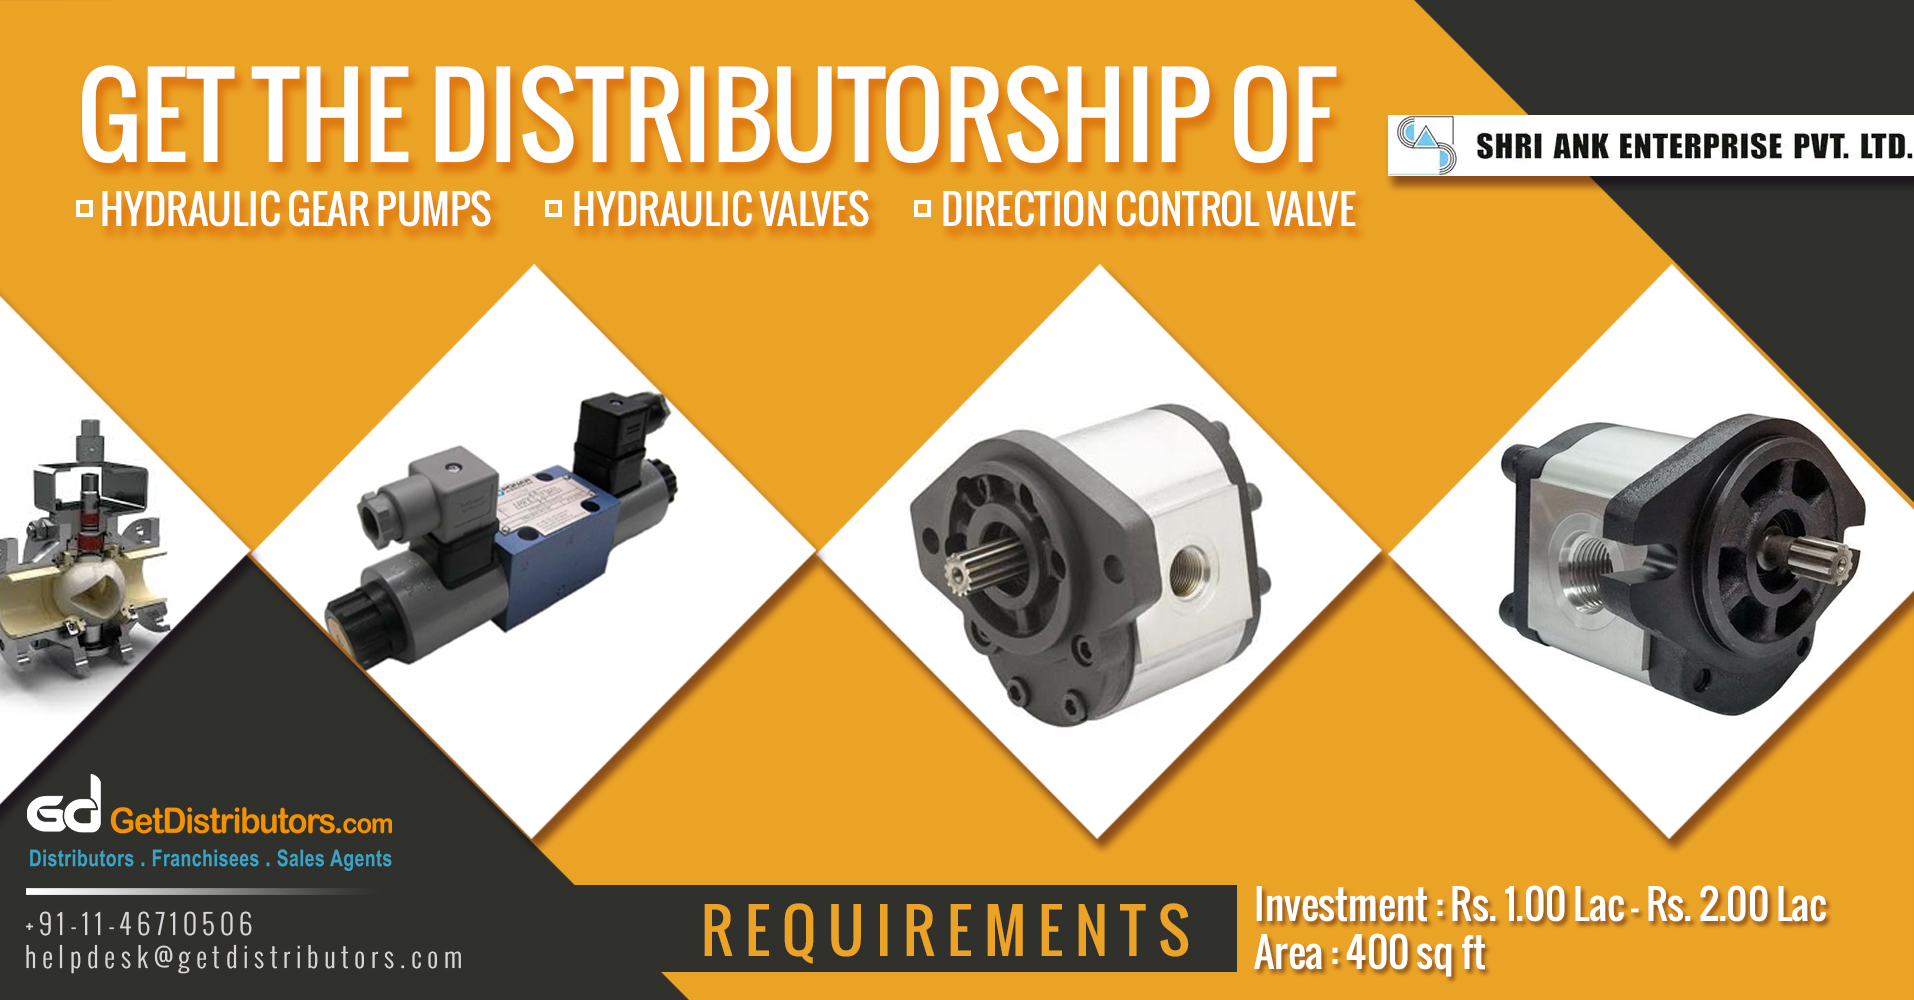 Robust And Easy To Use Hydraulic Pumps & Valves At Reasonable Prices